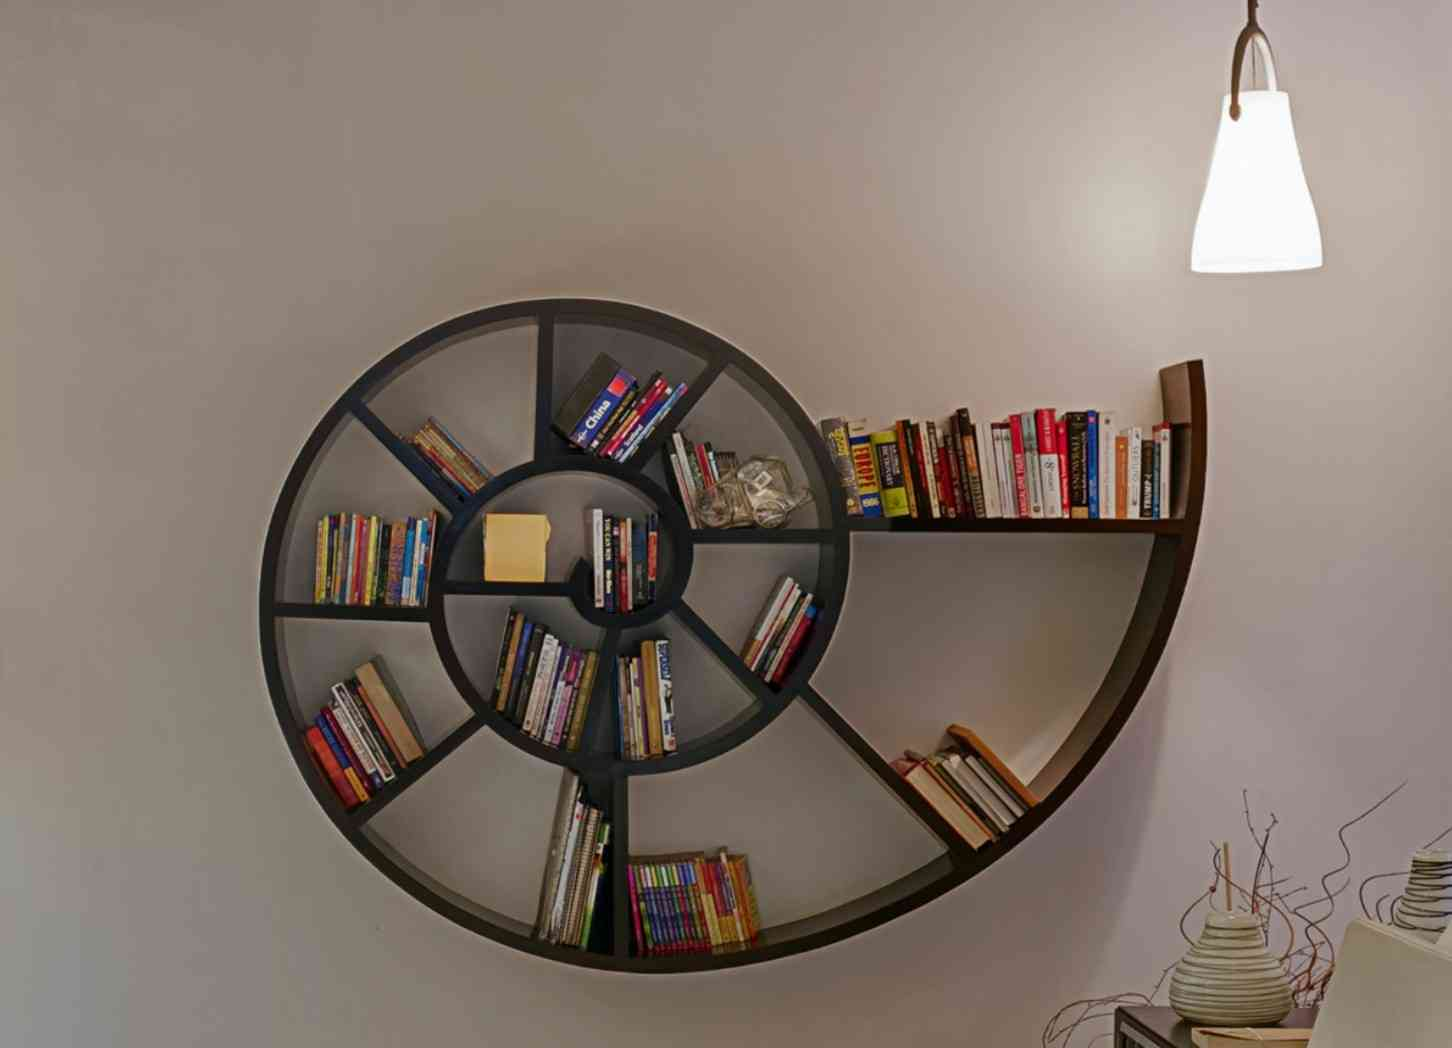 A spiral book rack allows numerous arrangement patterns while complementing the curving geometry of the cocoon-like bed